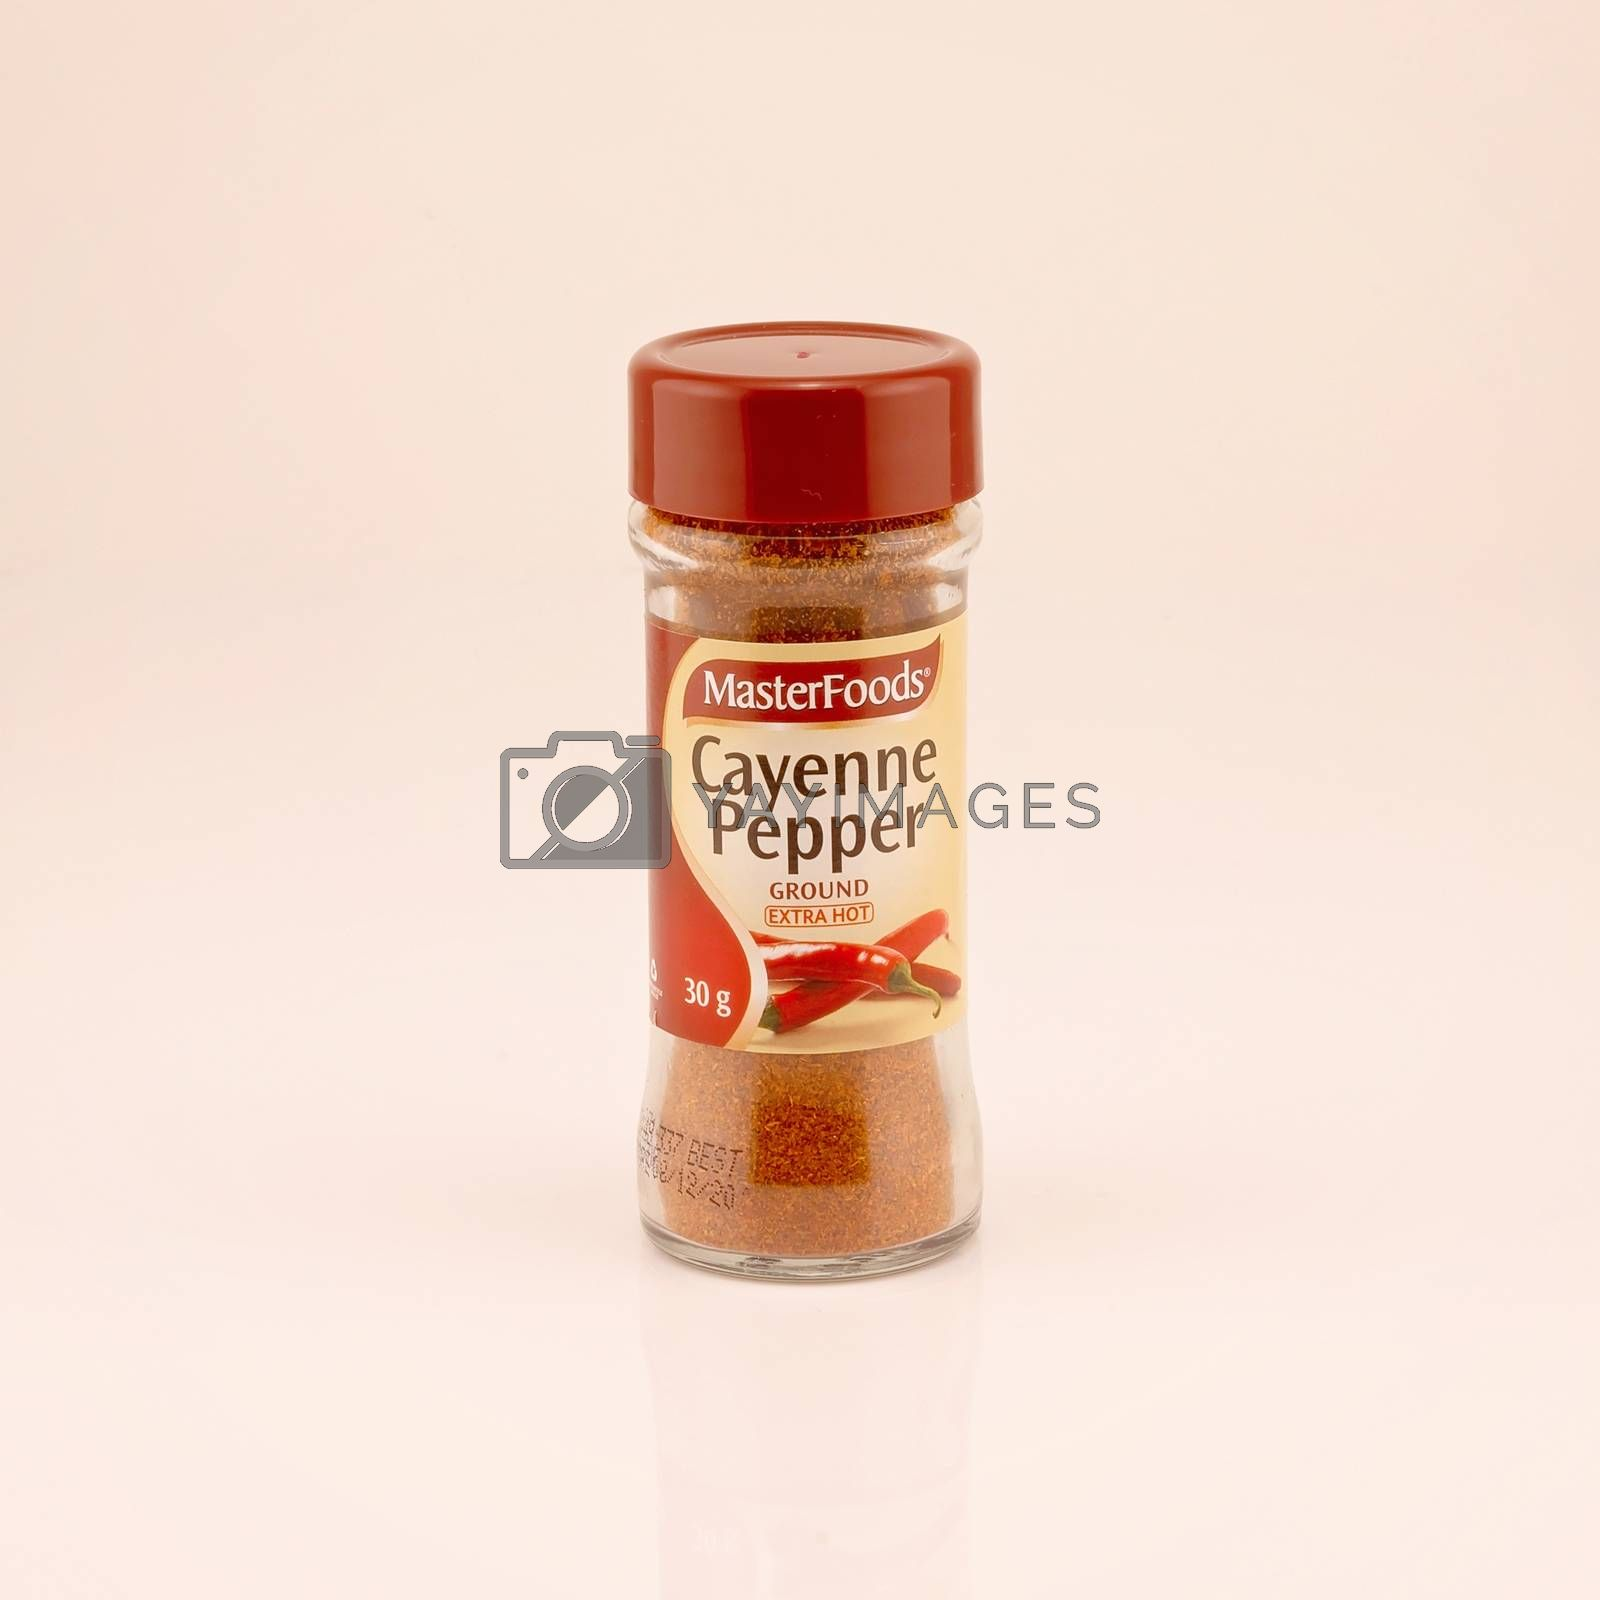 Mackay, Queensland, Australia - February 2020: A bottle of cayenne pepper isolated on a white background, product photography